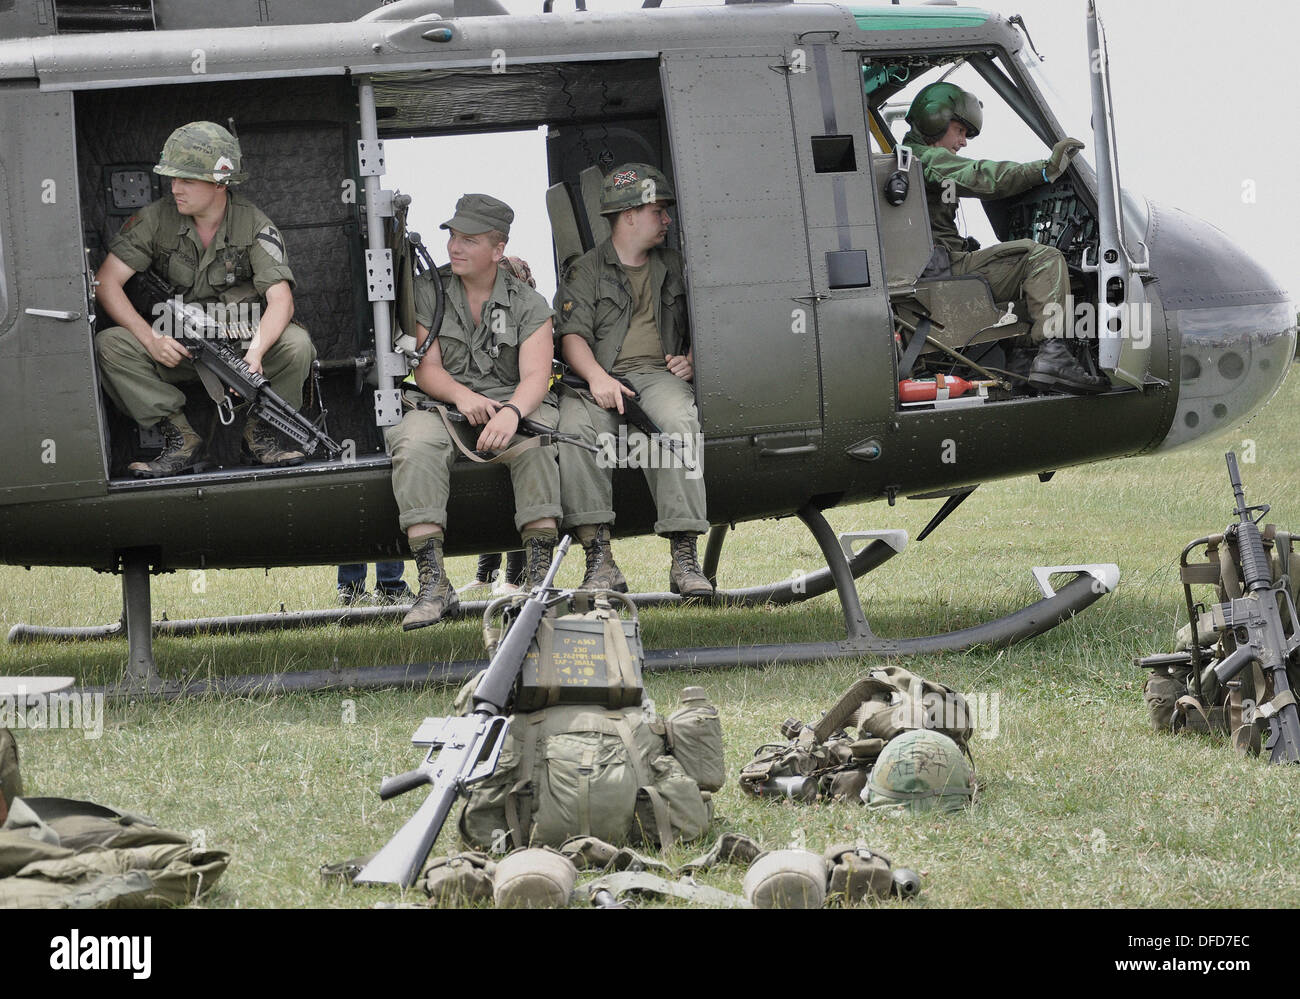 bell 205 helicopter for sale with Stock Photo Bell Uh 1 Huey With Re Enactors To Represent Vietnam War Scenario 61142212 on Cockpit Wallpaper together with 110629 Kenya Air Force Acquire Five Us Helicopters War Al Shabaab as well 1253 in addition 1403p huey furthermore Black Hawk Cockpit.